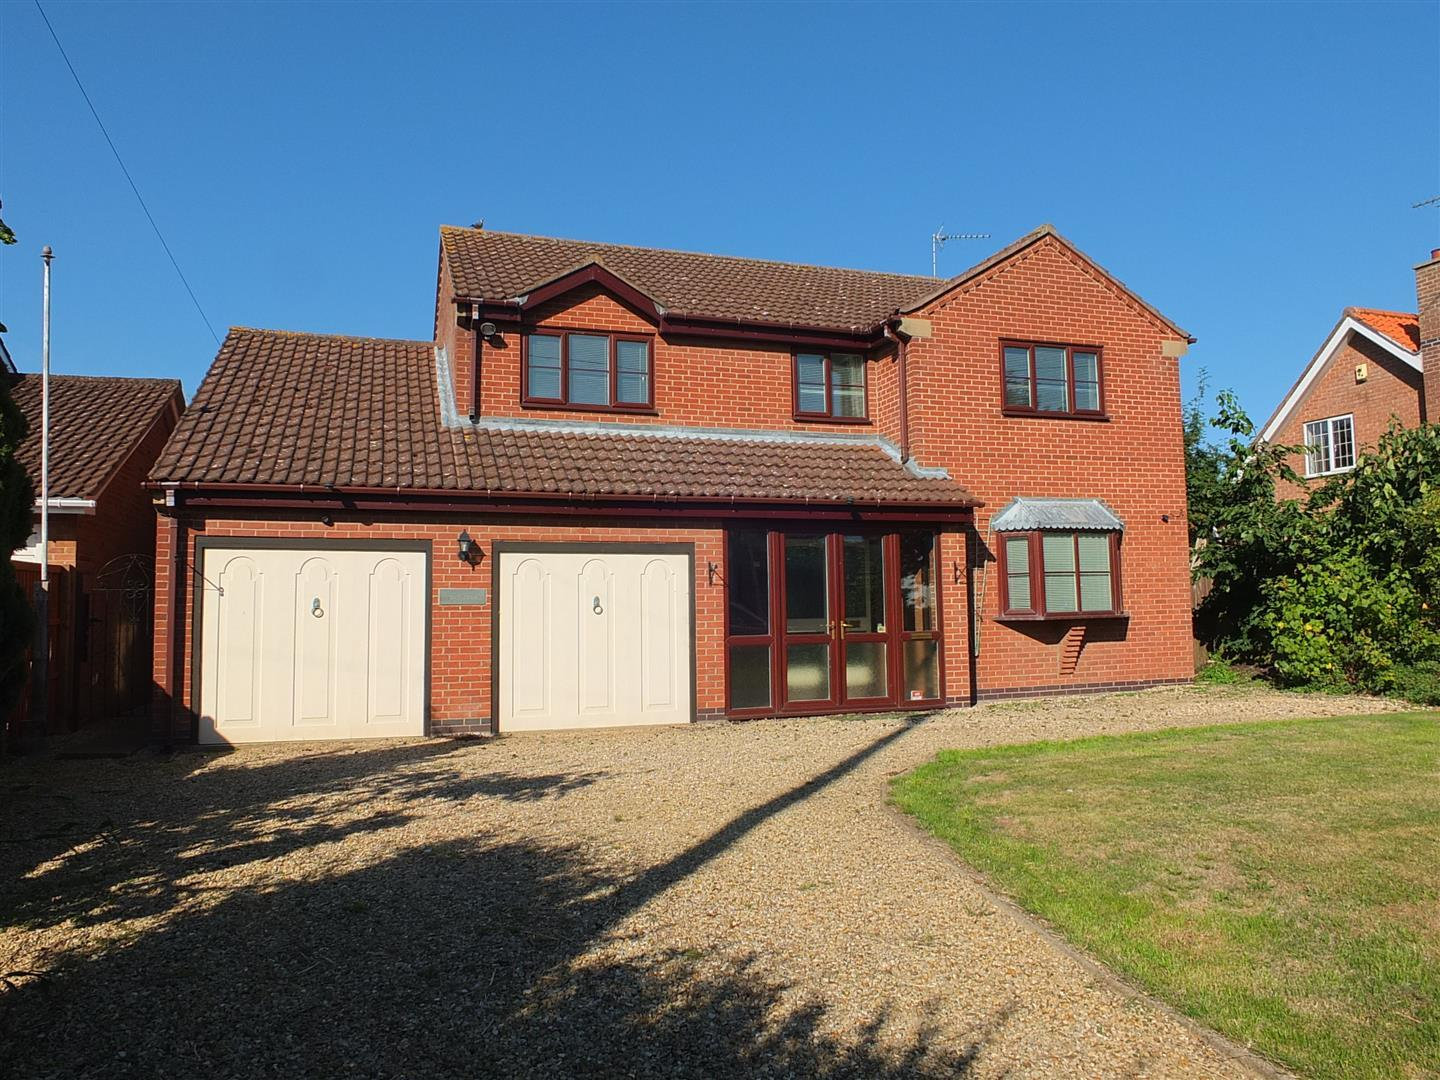 3 bedroom property in Pointon, Sleaford